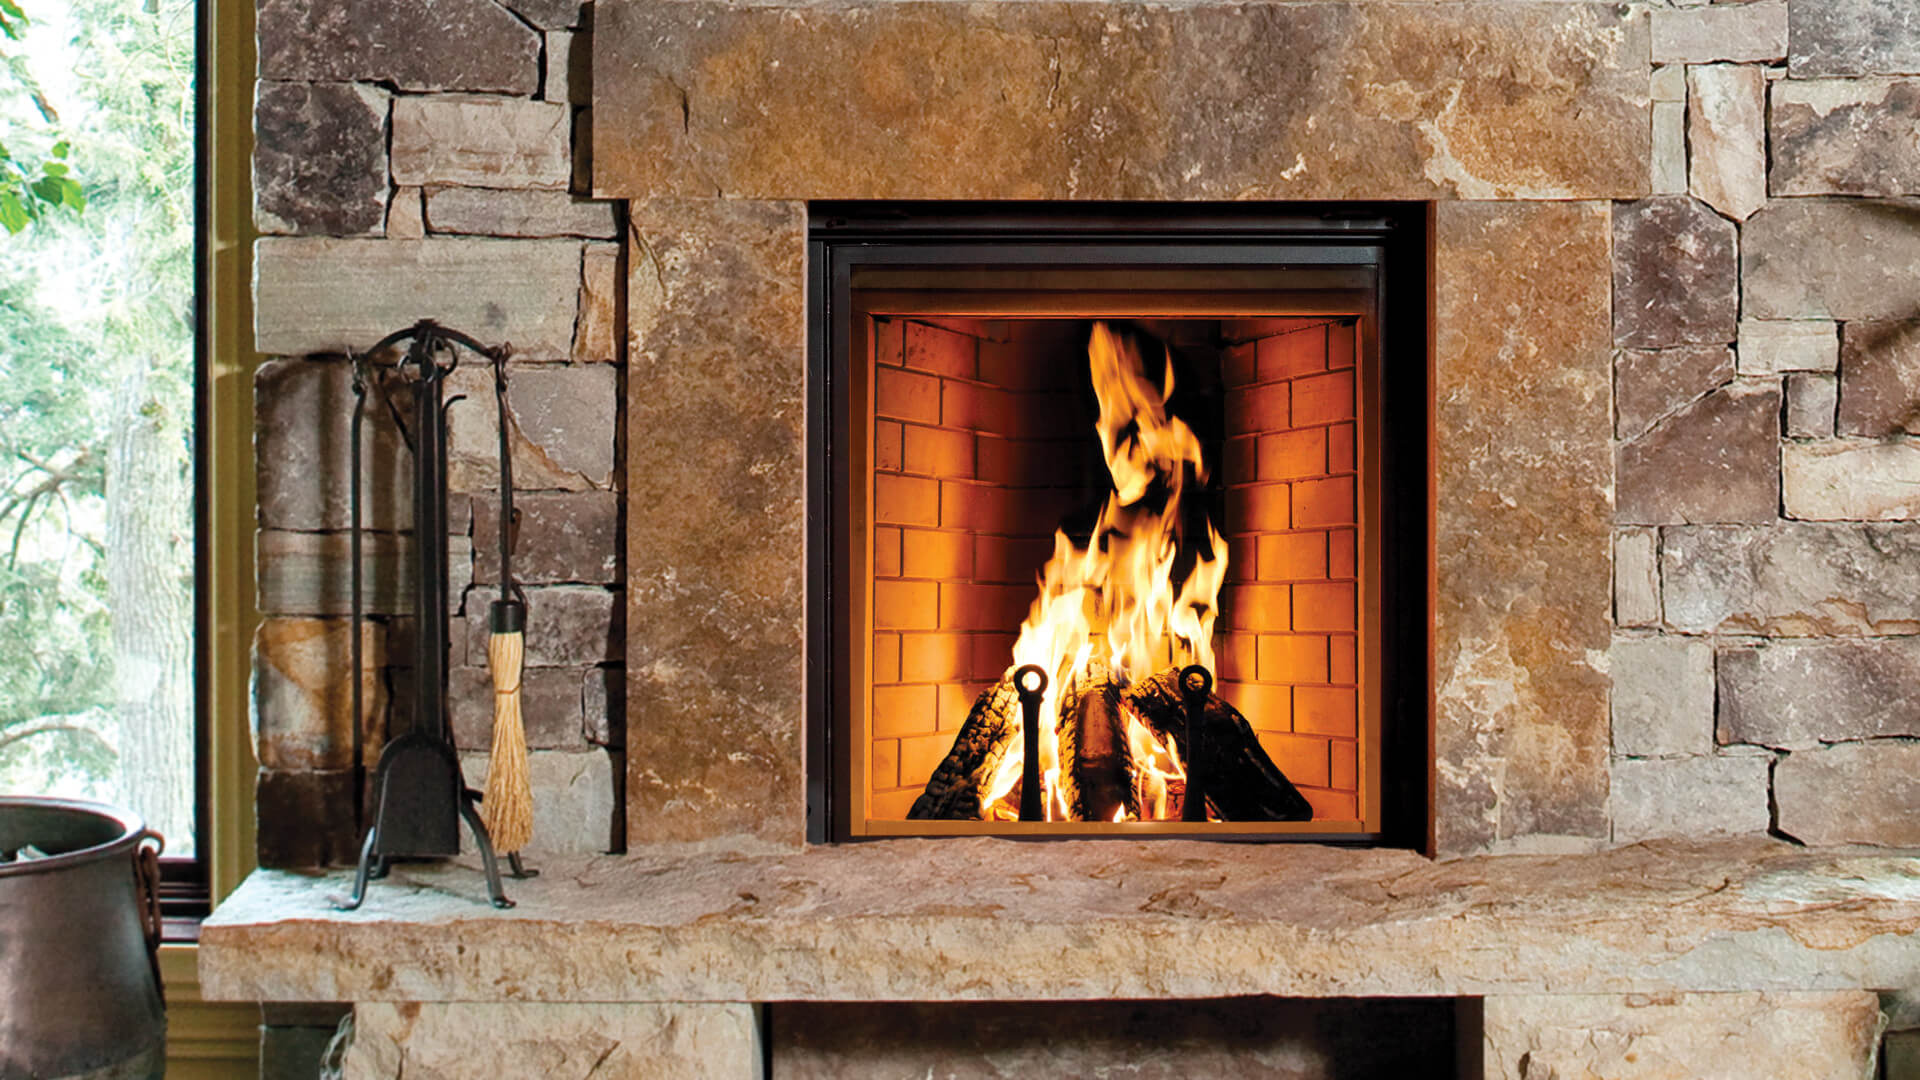 Renaissance fireplaces rumford 1000 wood burning for Rumford fireplace insert